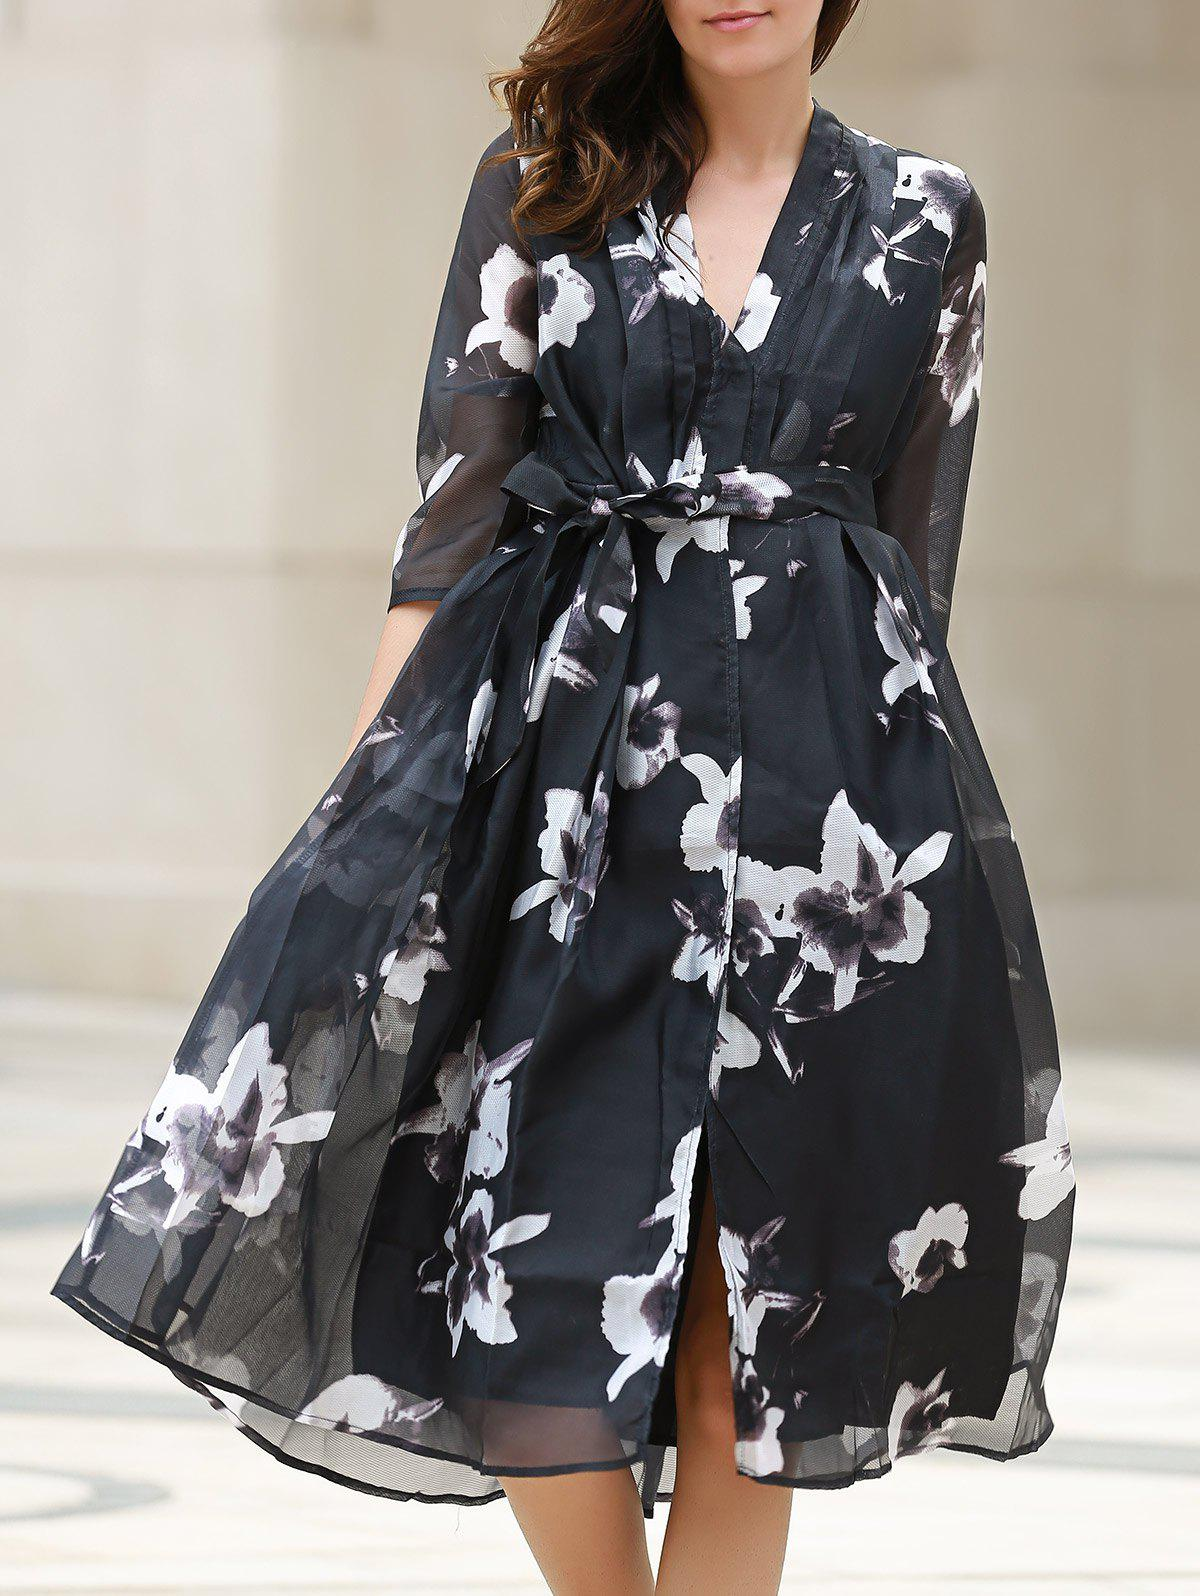 V-Neck 3/4 Sleeve Floral Print Belted Dress For Women - BLACK S